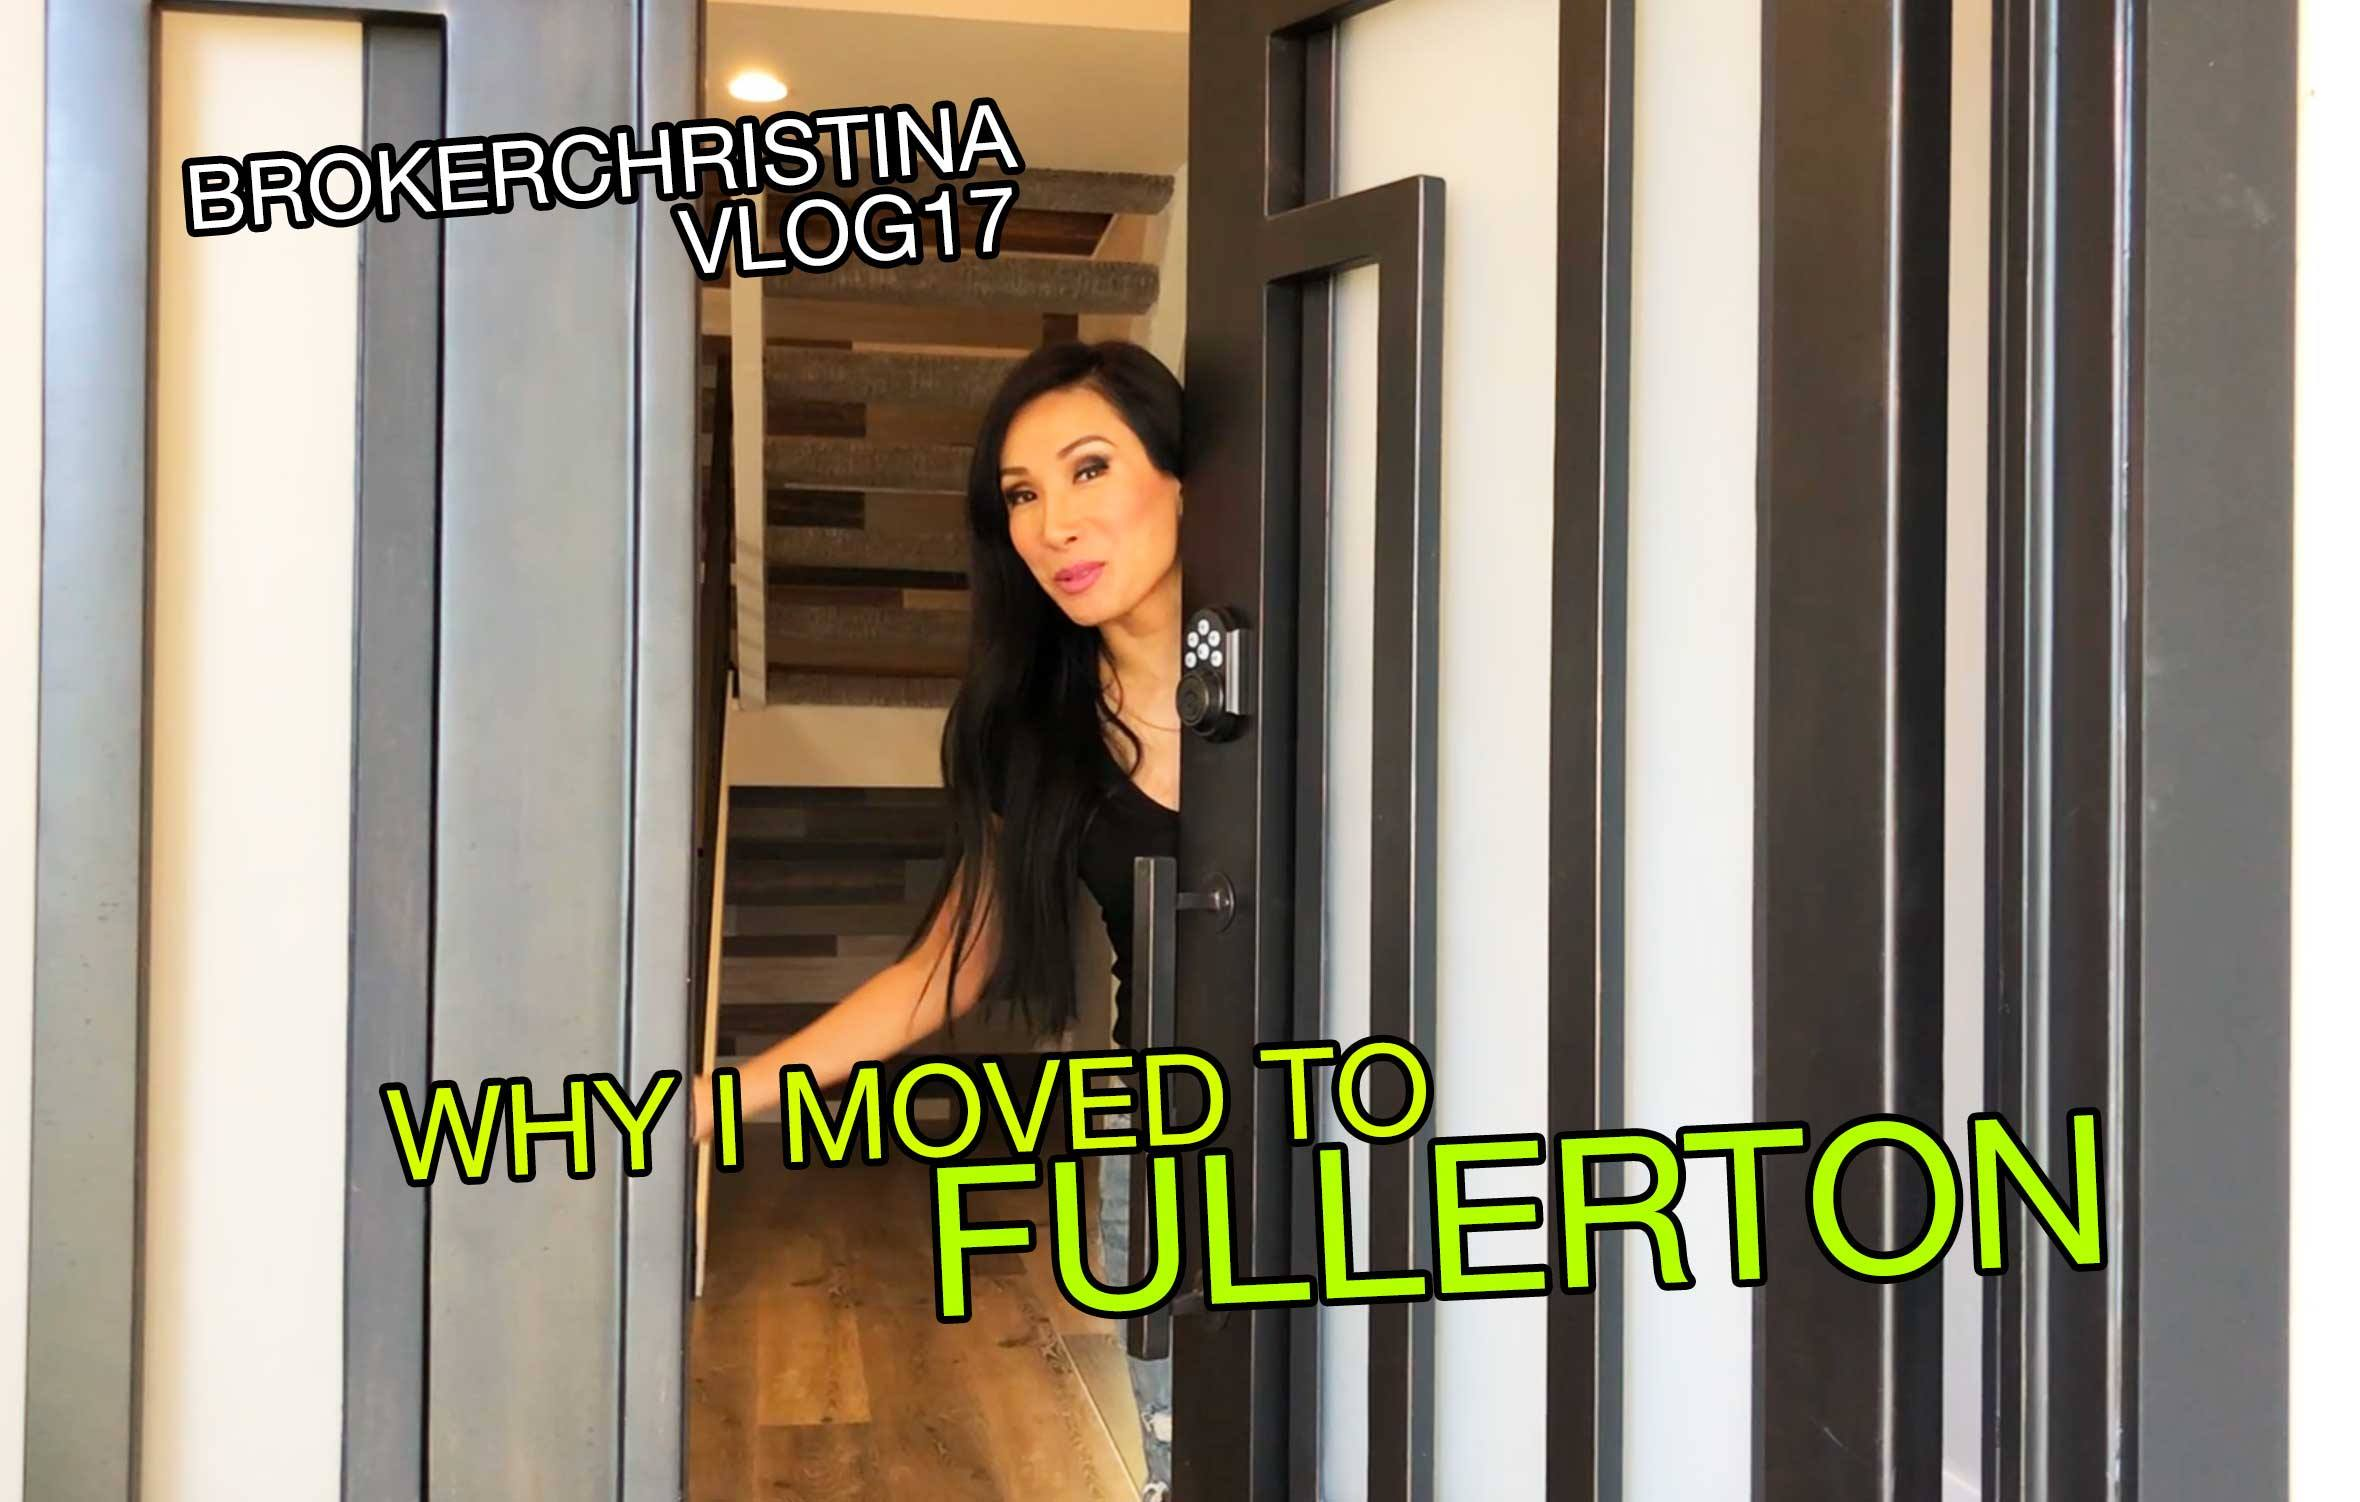 WHY I MOVED TO FULLERTON | BROKERCHRISTINA VLOG17